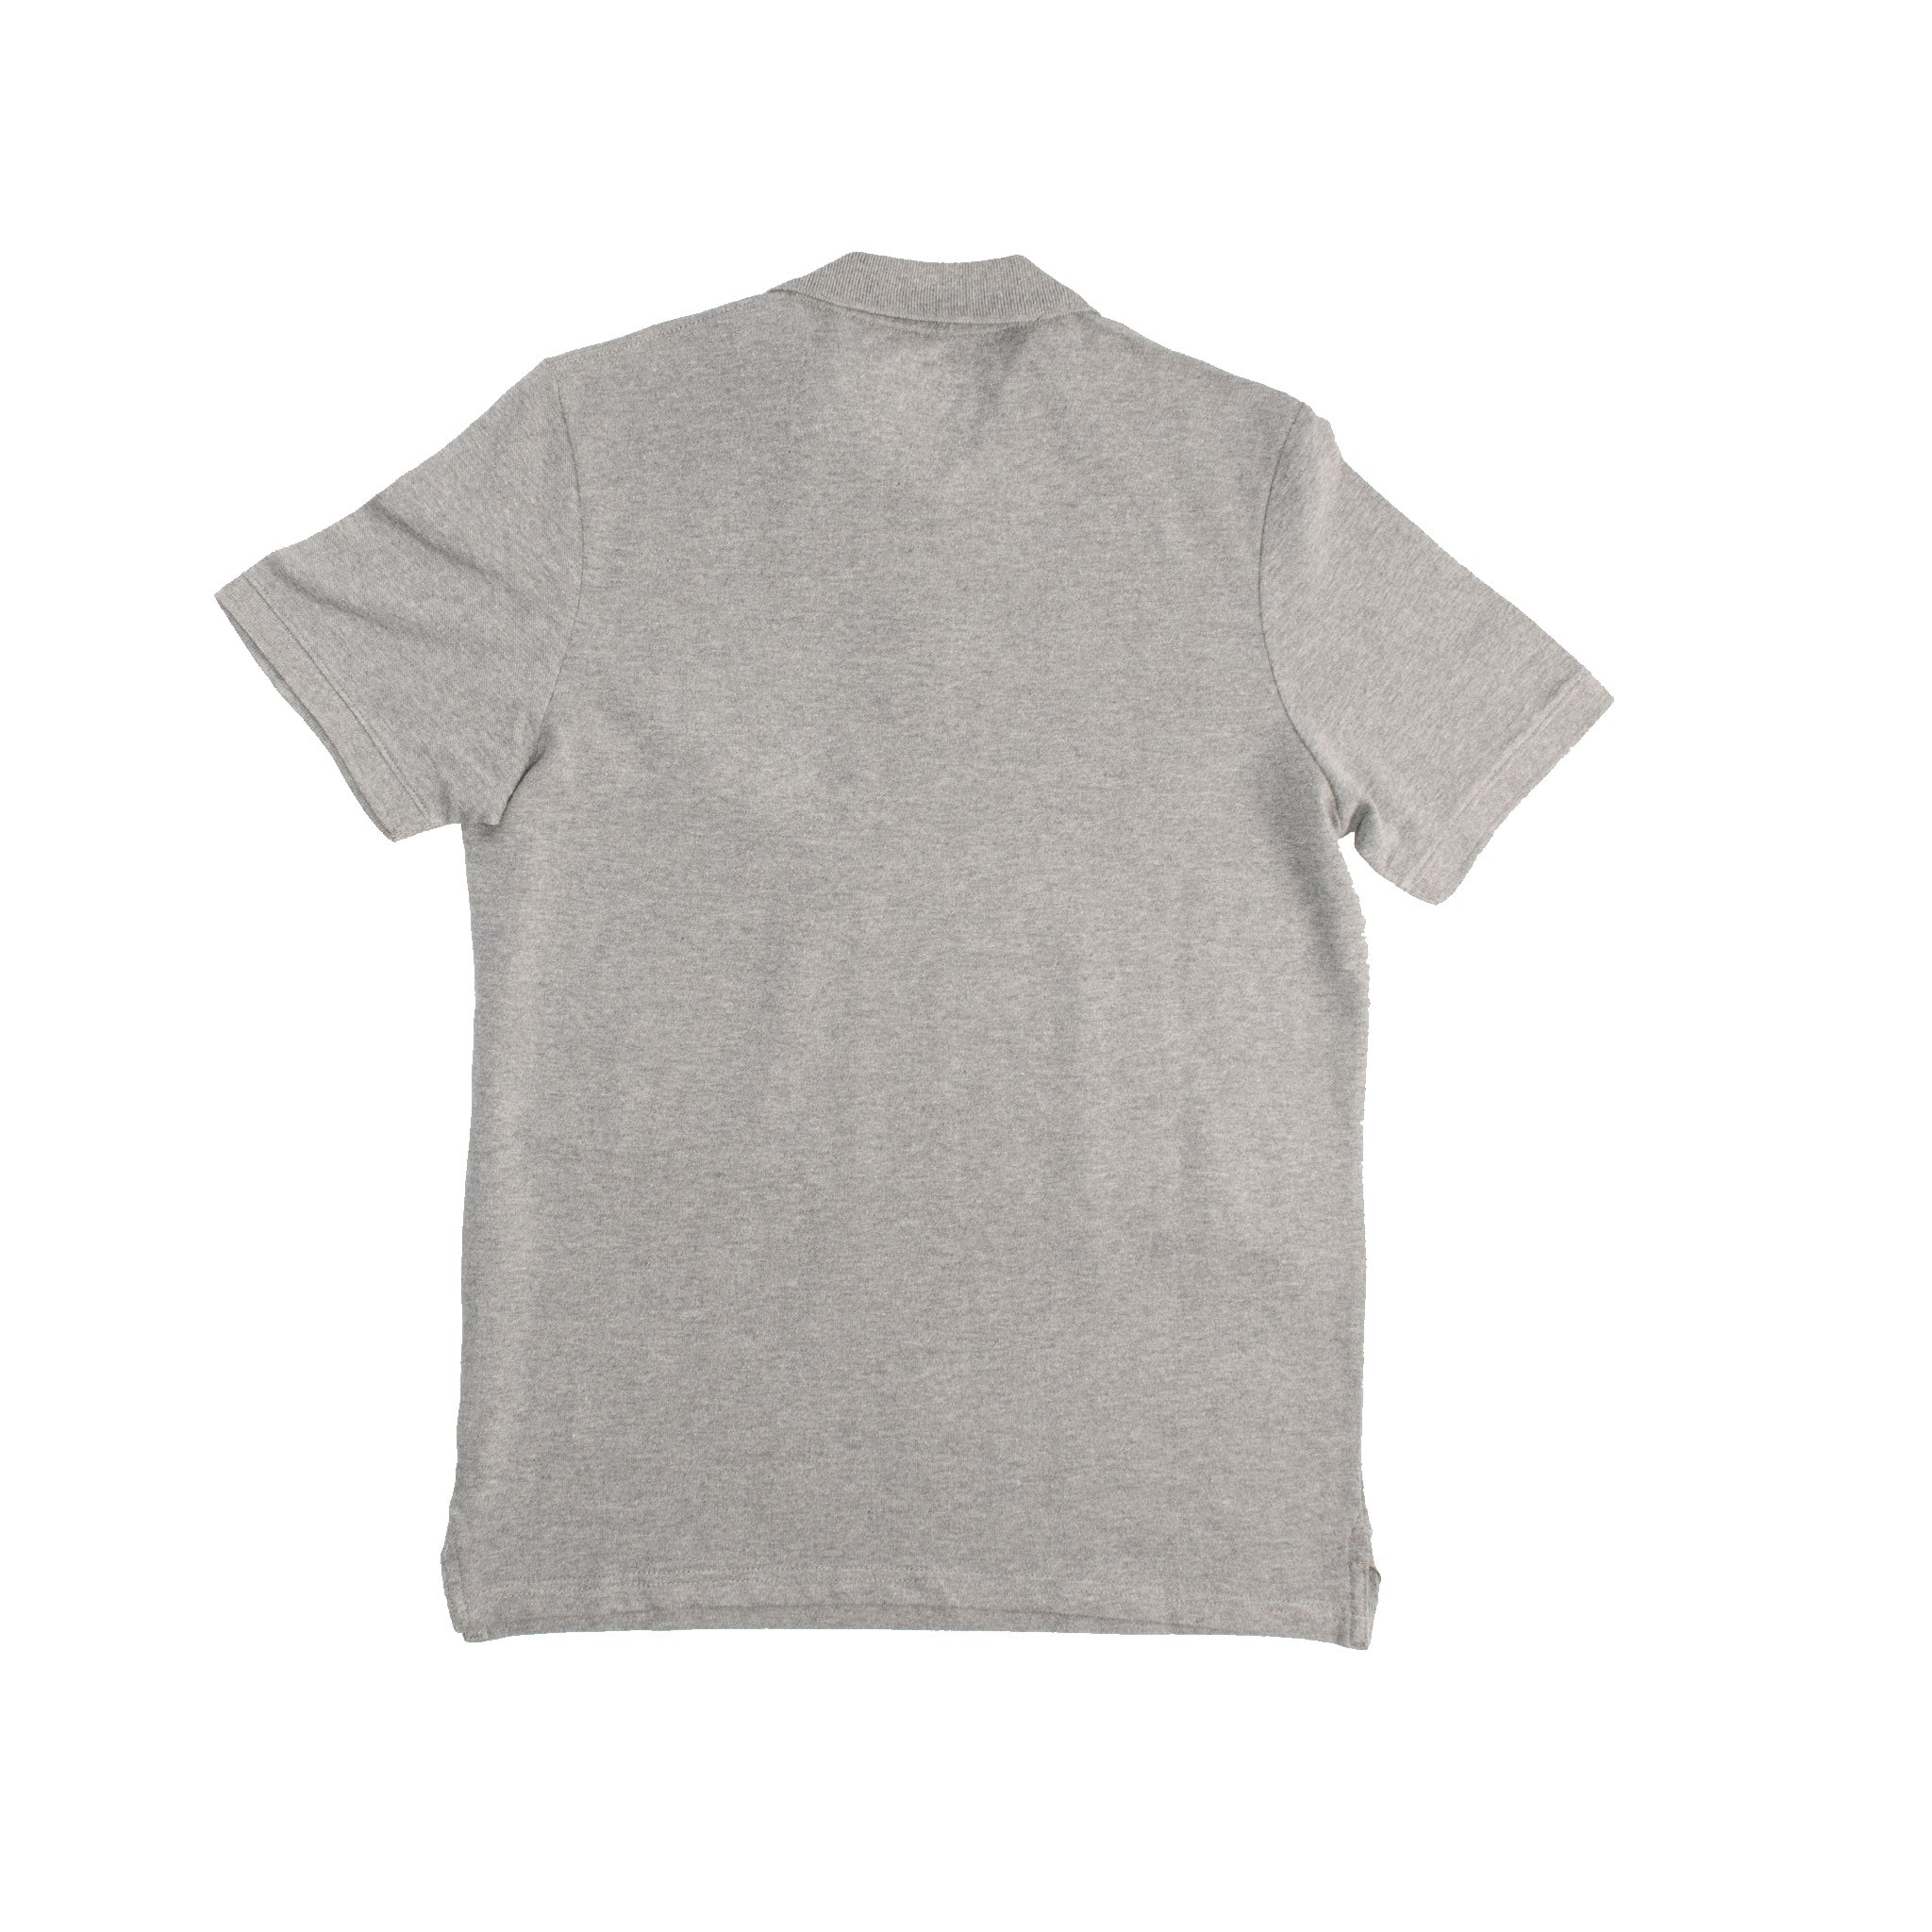 MEN'S S/S POLO - GREY STONE - Export Mall